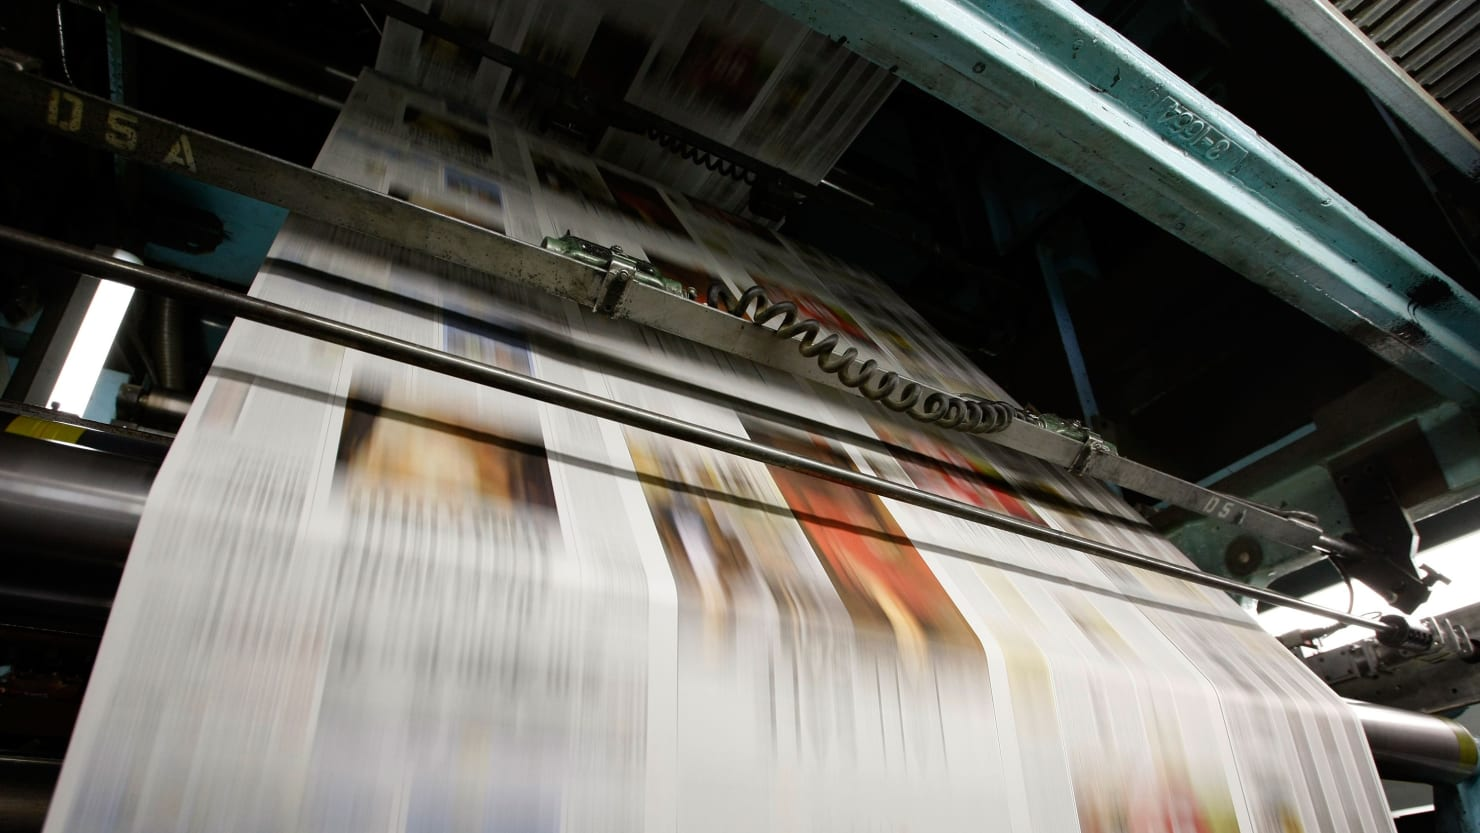 China Daily, News Agency Controlled by Chinese Community ...